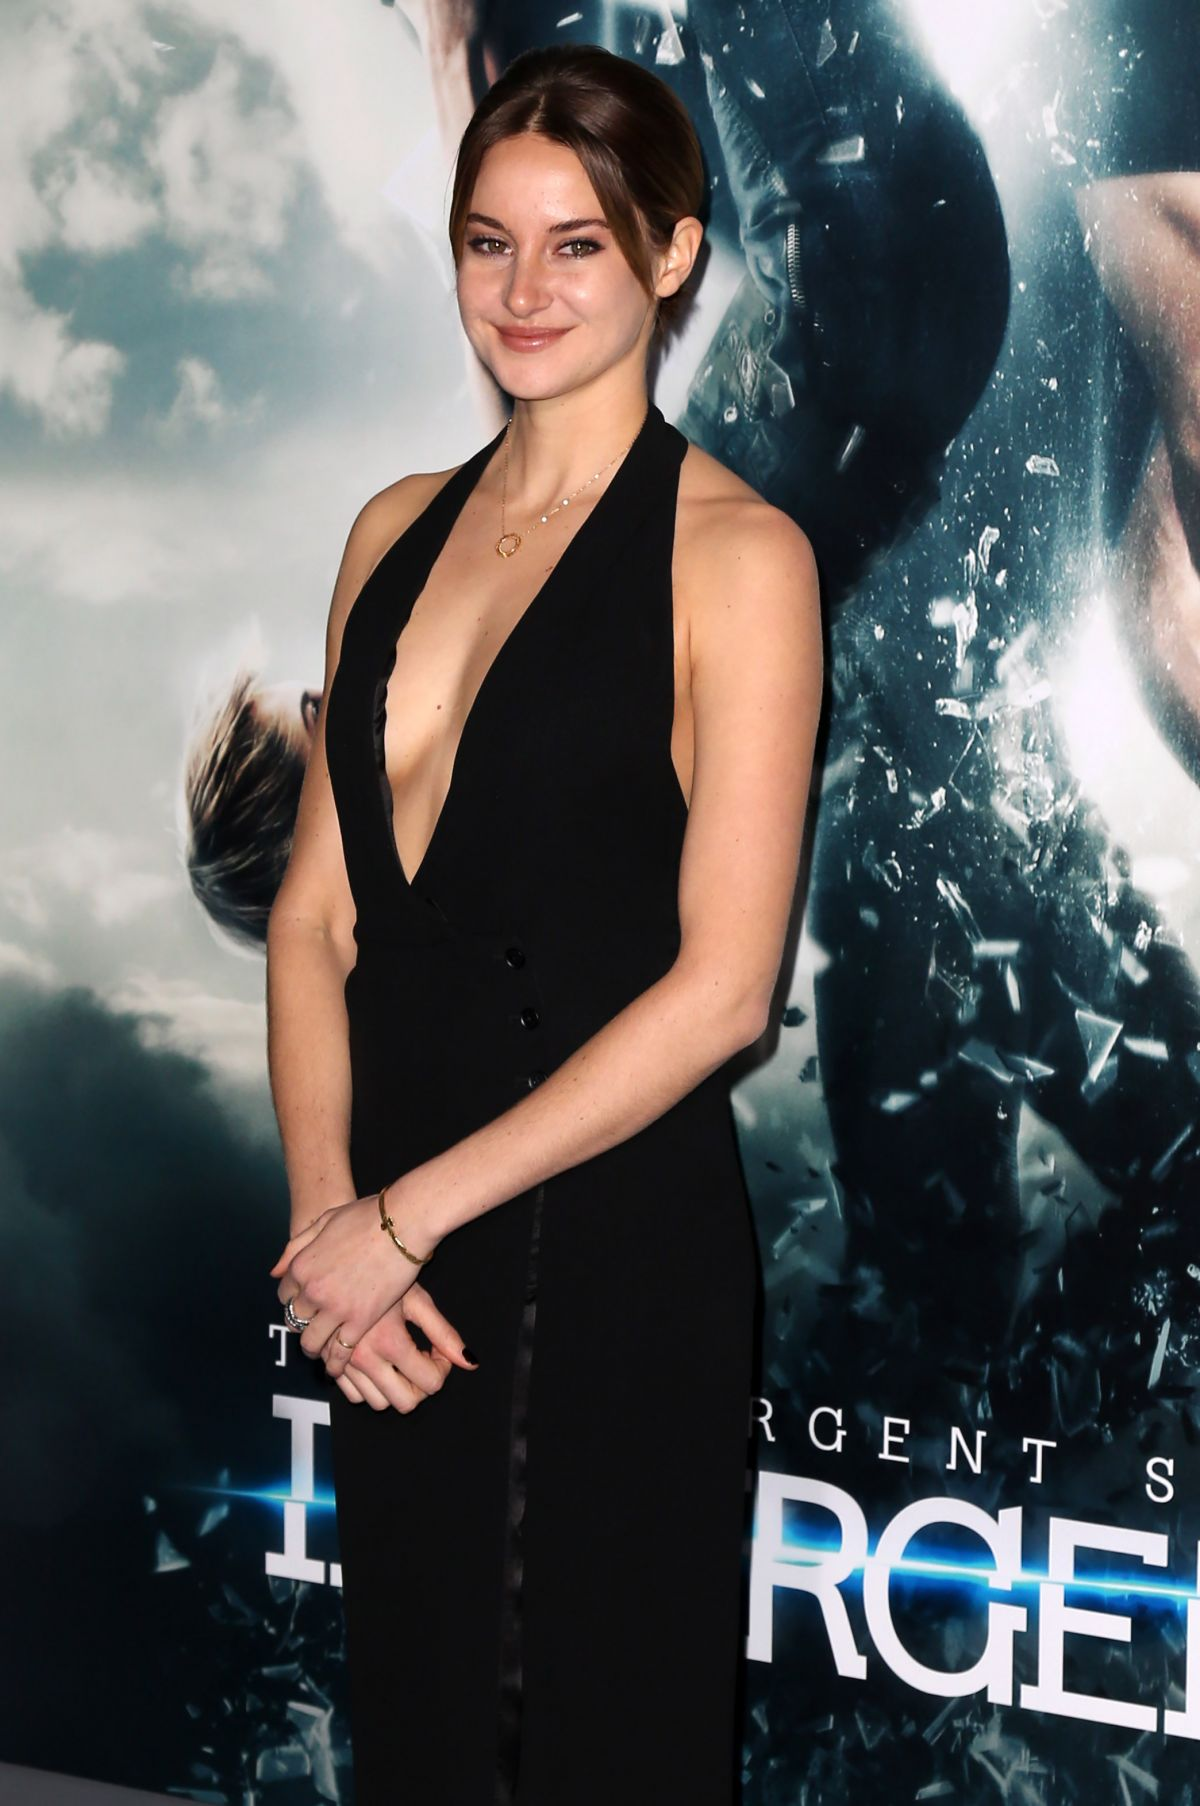 42 Hot Pictures Of Shailene Woodley - Tris In Divergent Actress